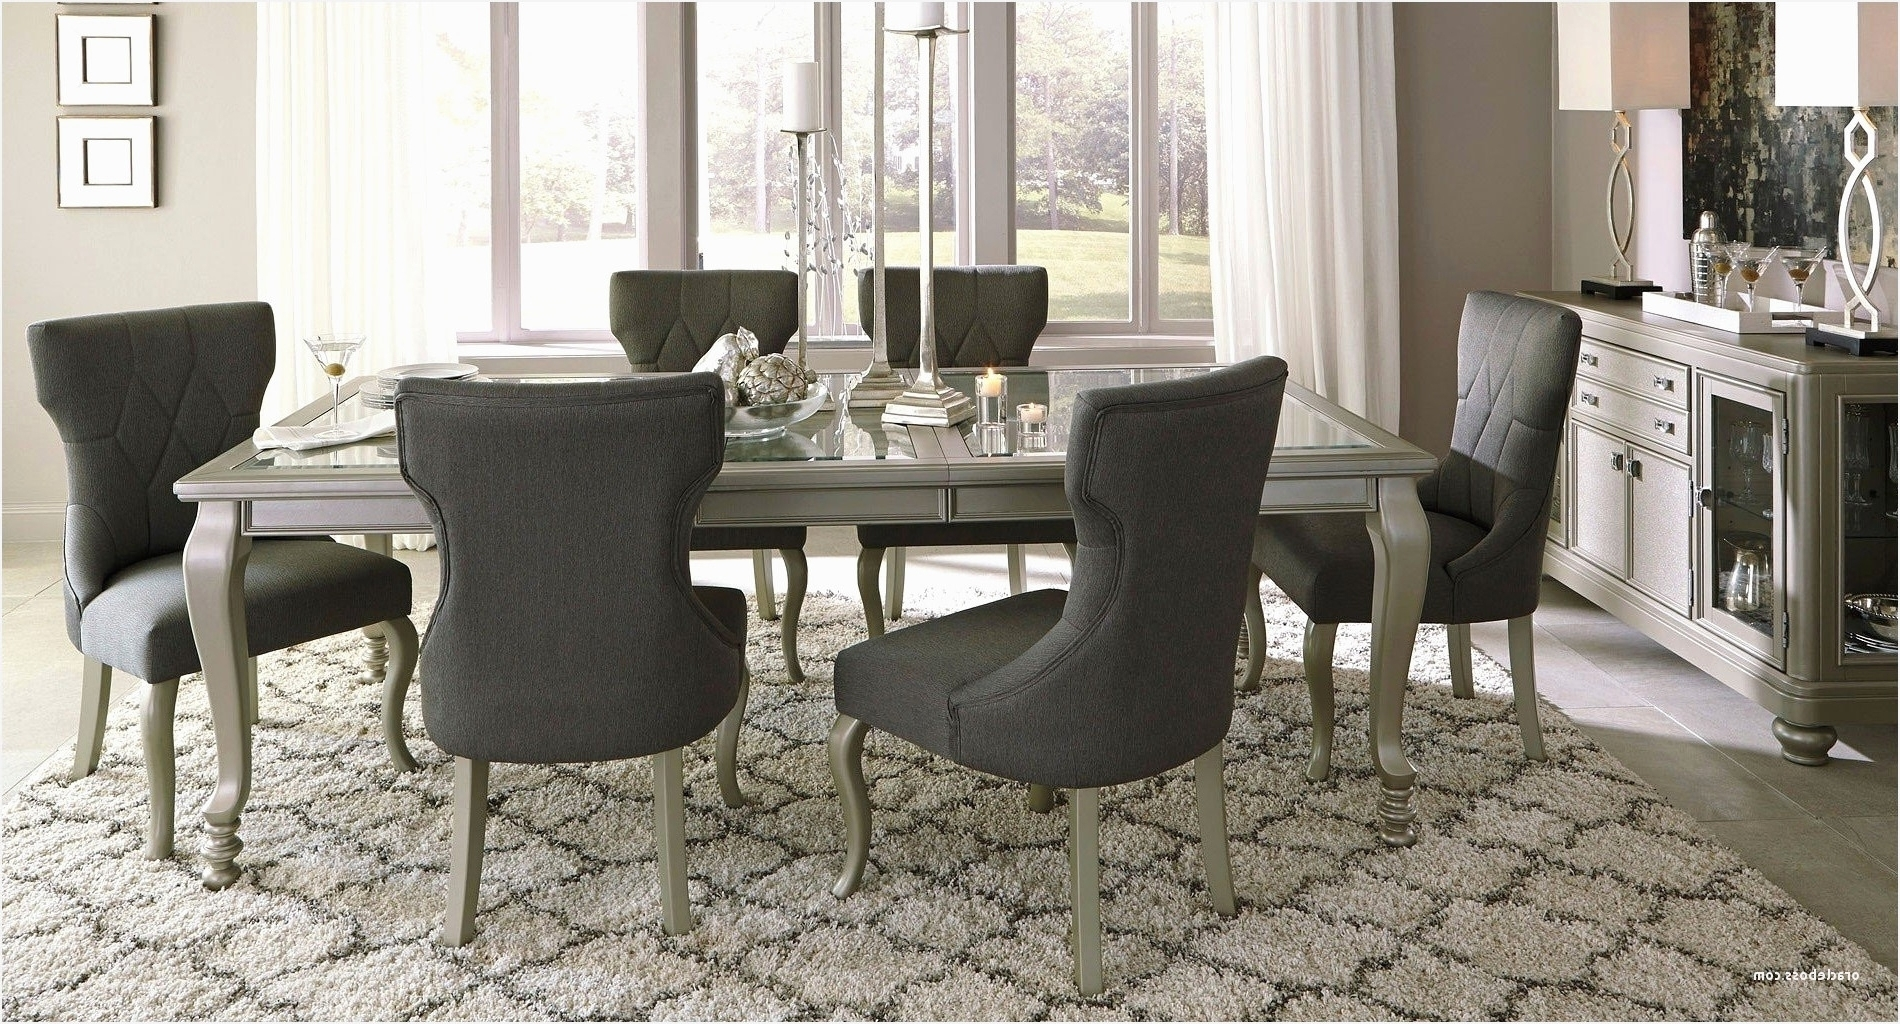 Engaging Grand Dining Room At Chapleau Extension Dining Table for Favorite Chapleau Extension Dining Tables